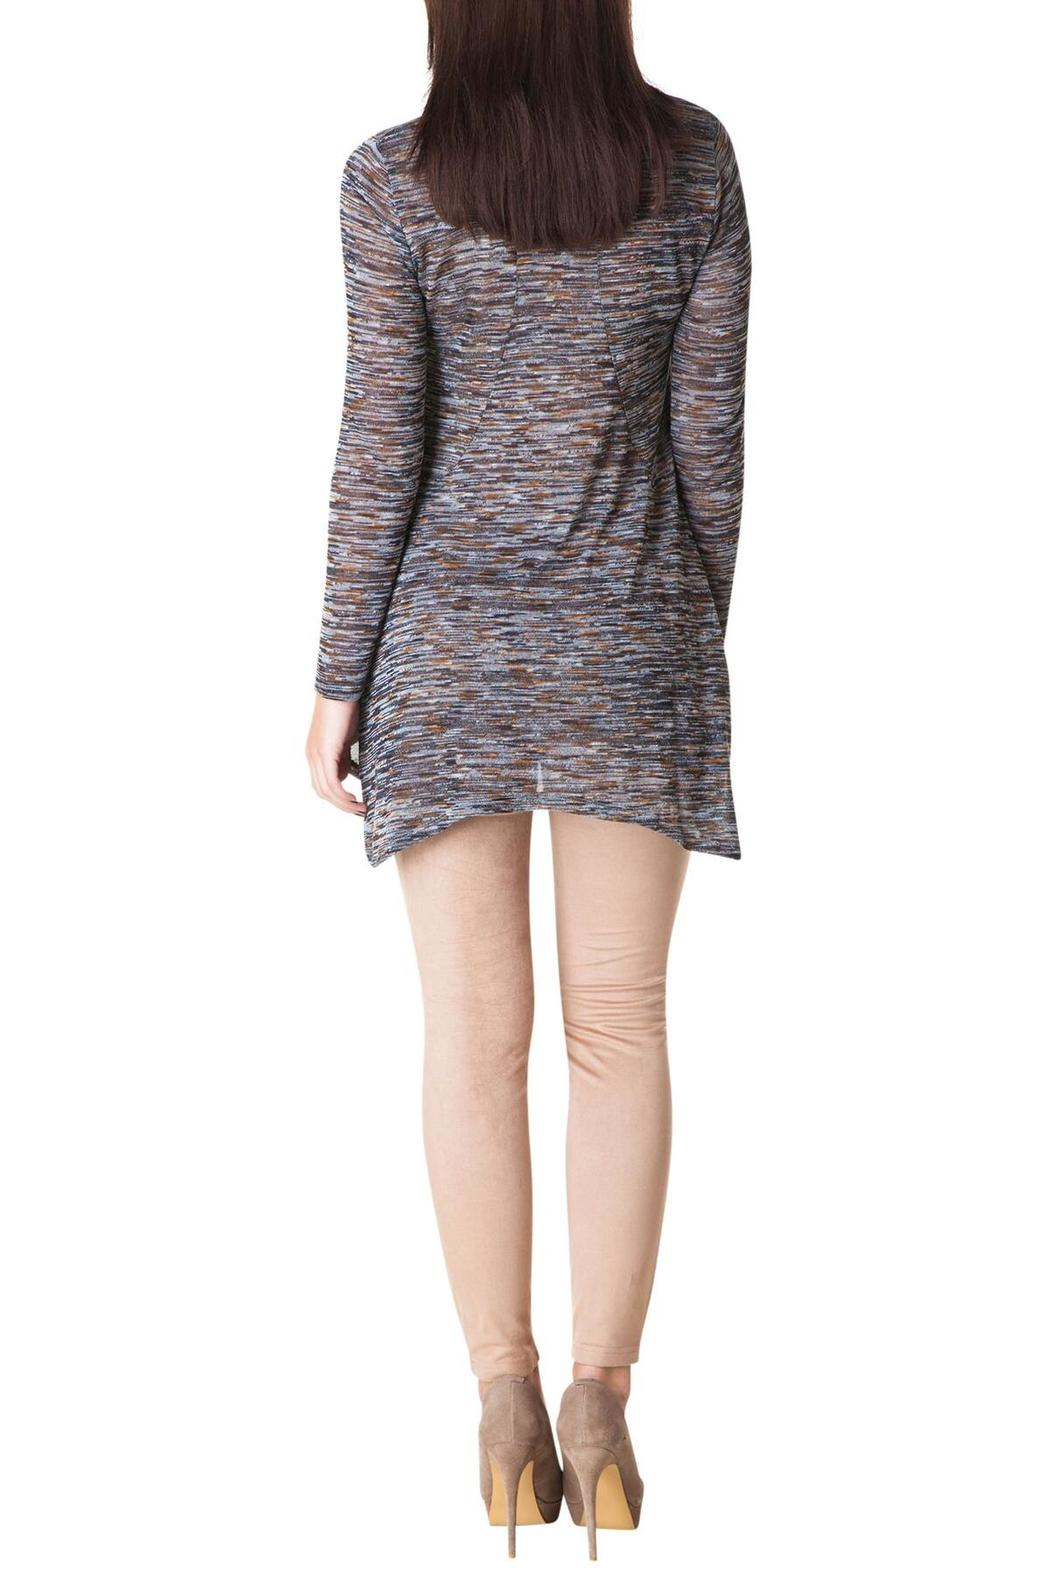 Yest Catrall Tunic - Front Full Image